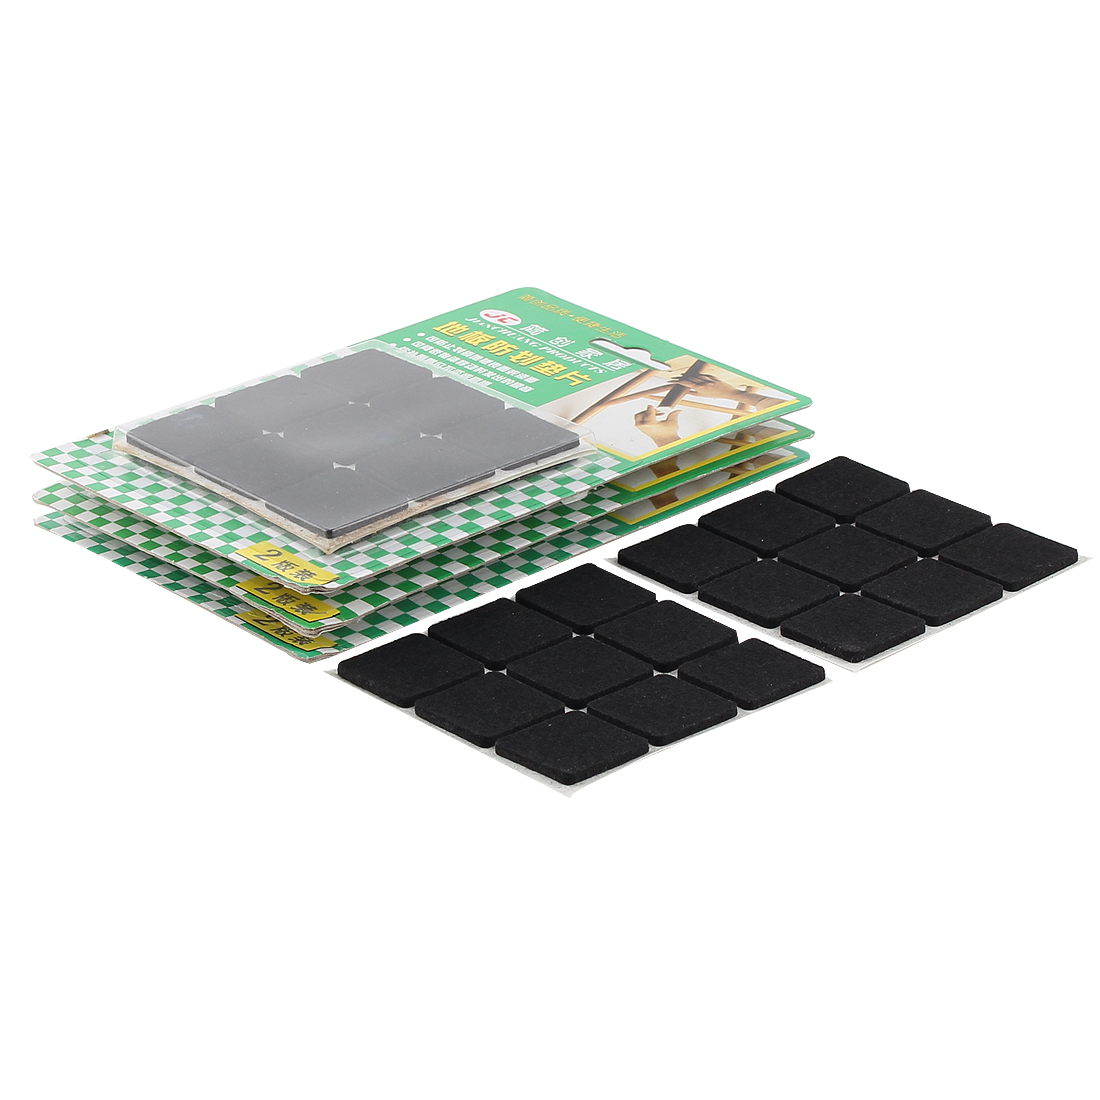 Table Chair Square Anti Scratch Furniture Felt Pads Cover Black 25 x 25mm 72pcs